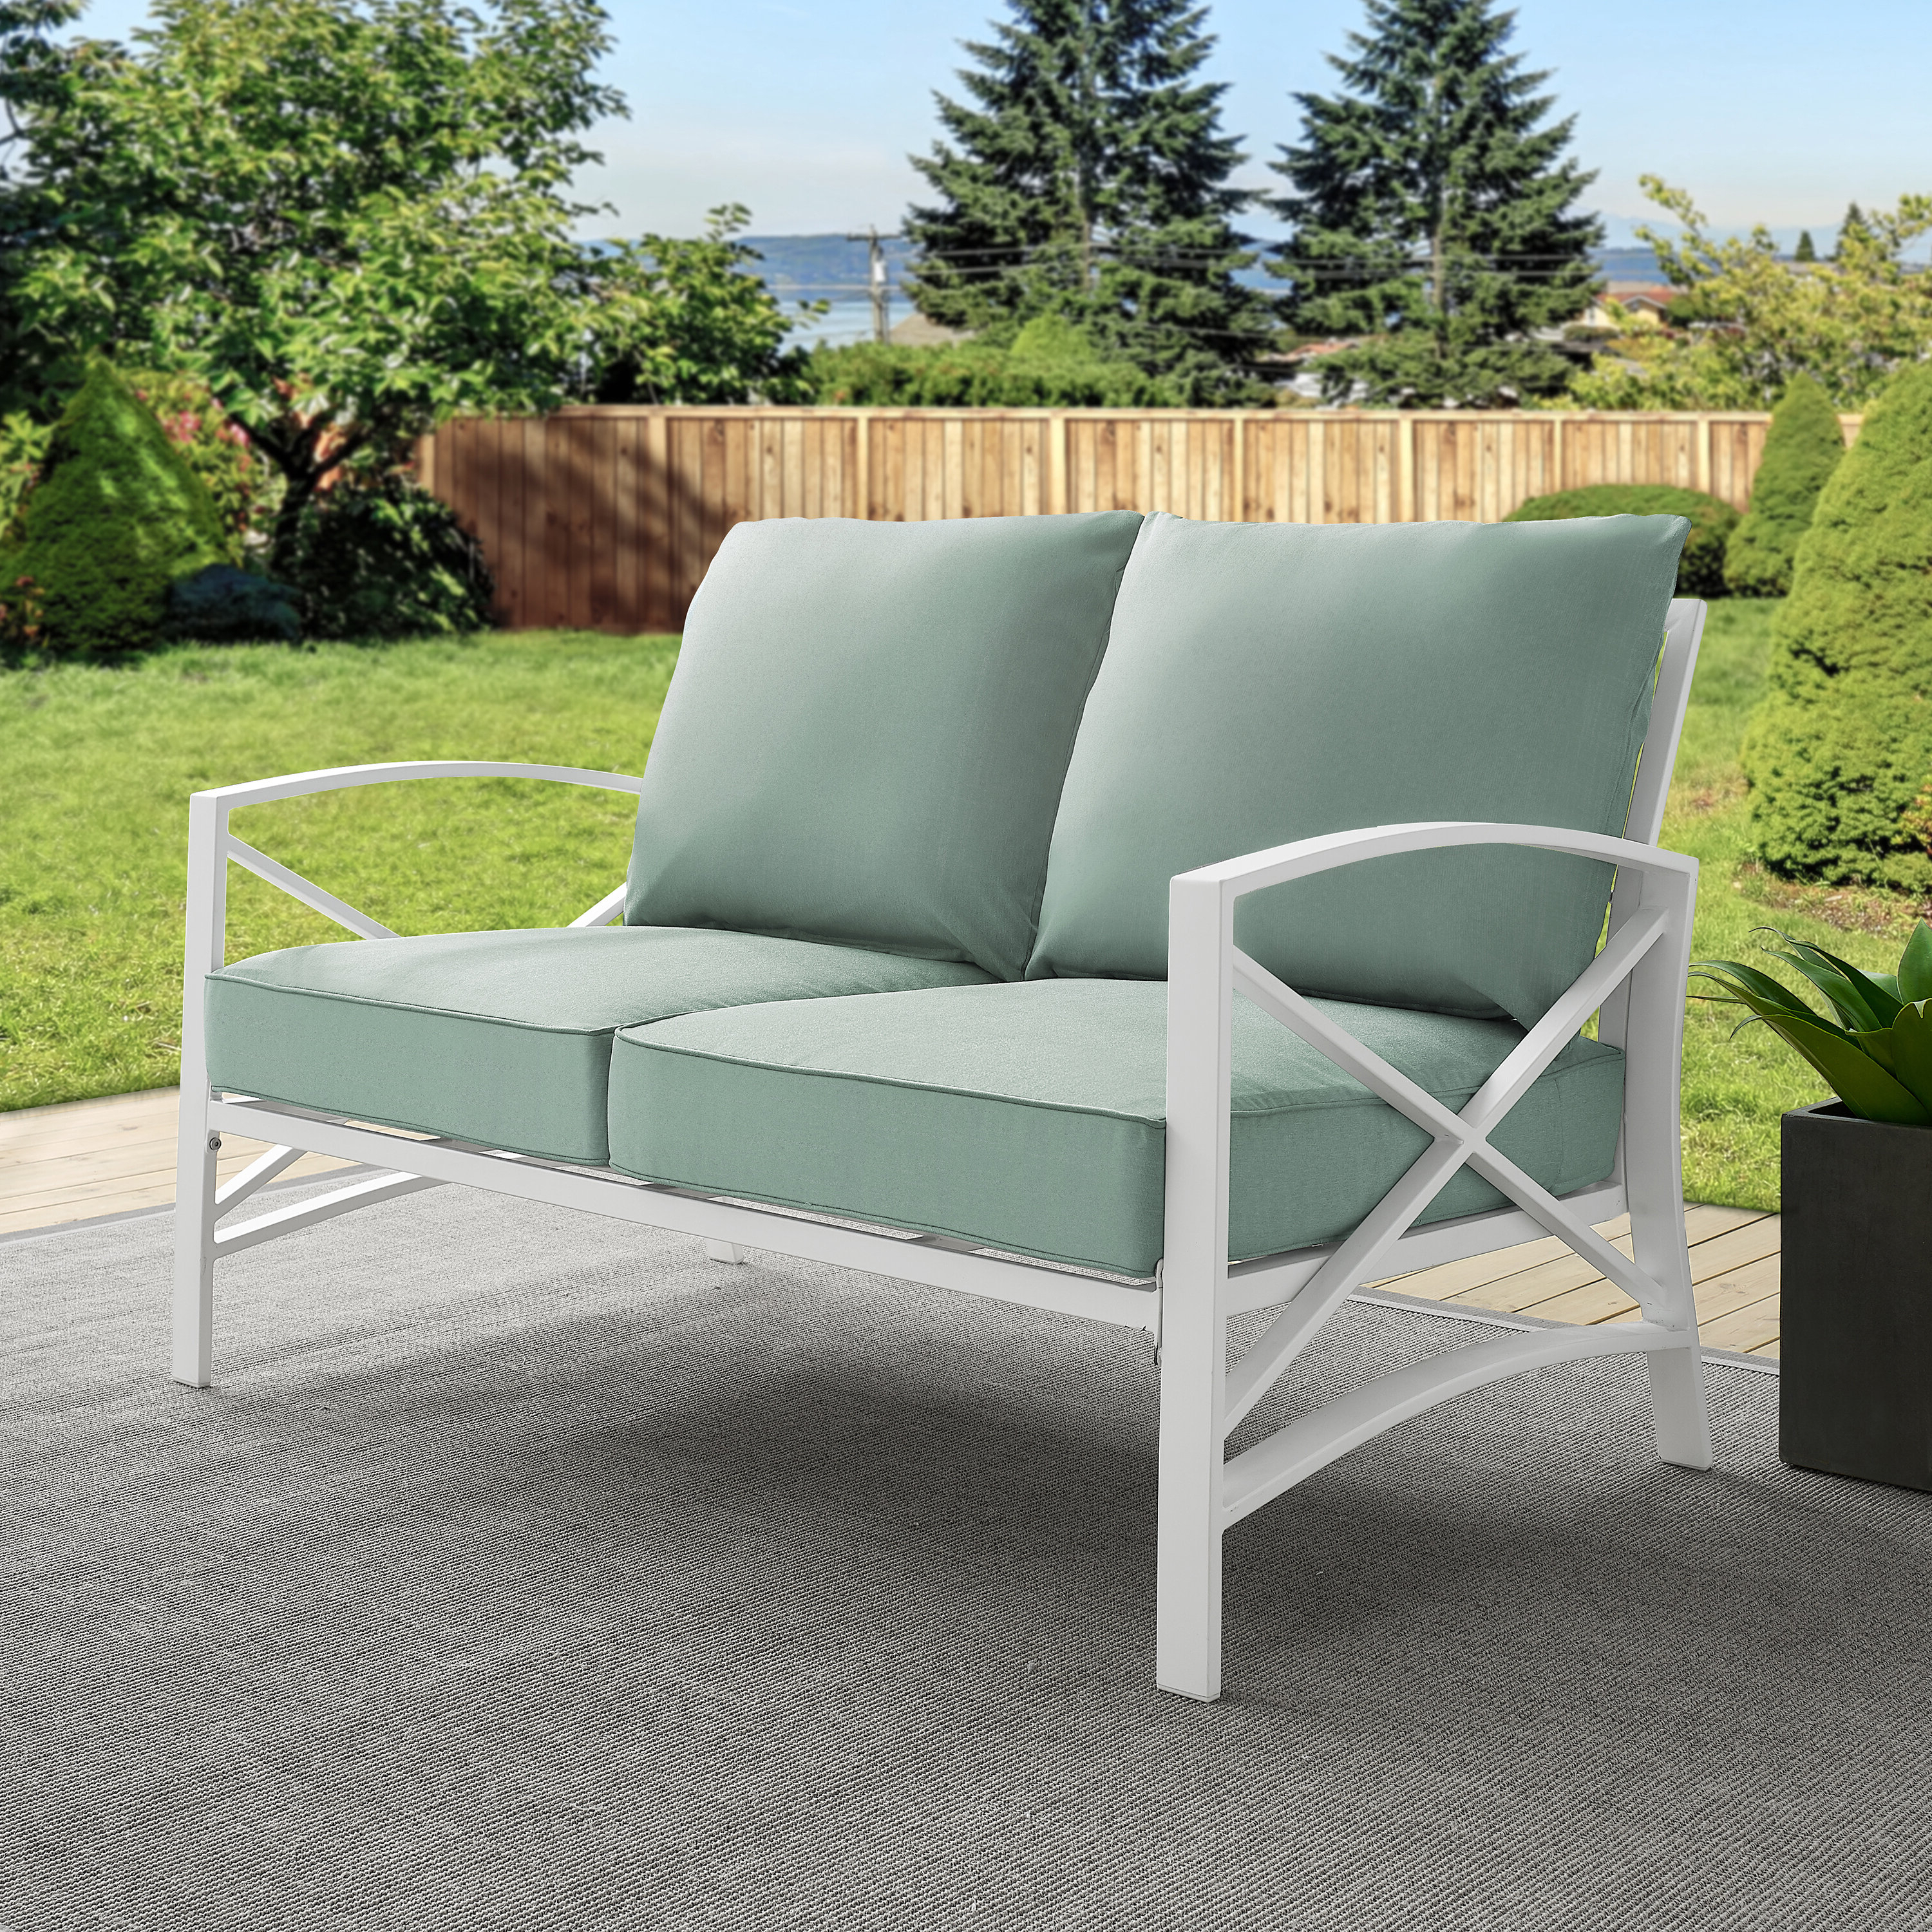 Well Known Freitag Loveseat With Cushions In Mendelson Loveseats With Cushion (View 18 of 20)